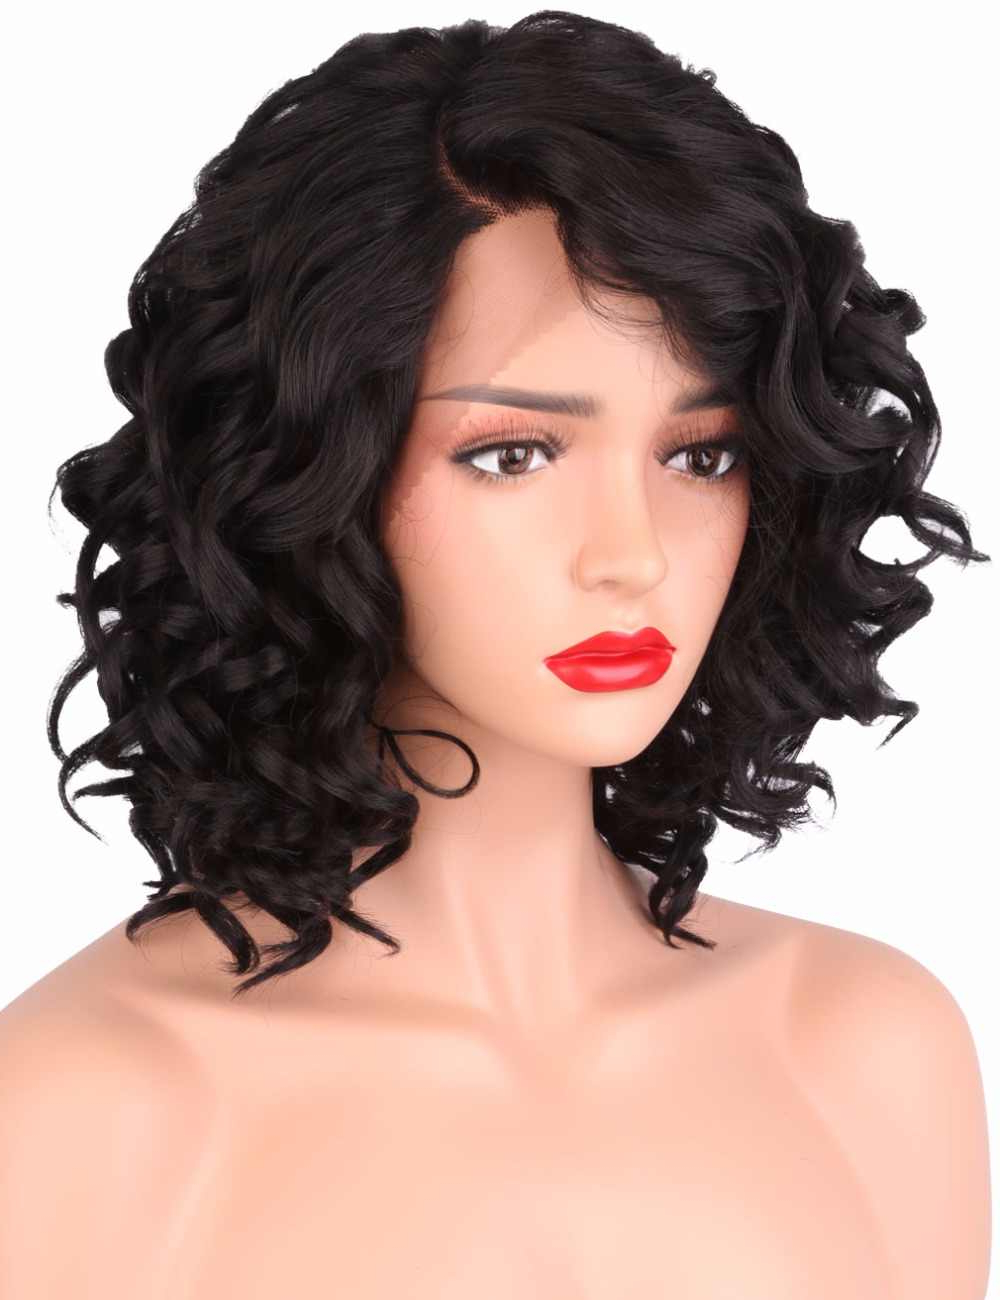 Well Known Naturally Curly Bob Hairstyles Pertaining To Strongbeauty Synthetic Lace Front Wig Curly Bob Haircut Heat Resistant/ Side Part Natural Black Wig Women's Medium Length L Part (Gallery 20 of 20)